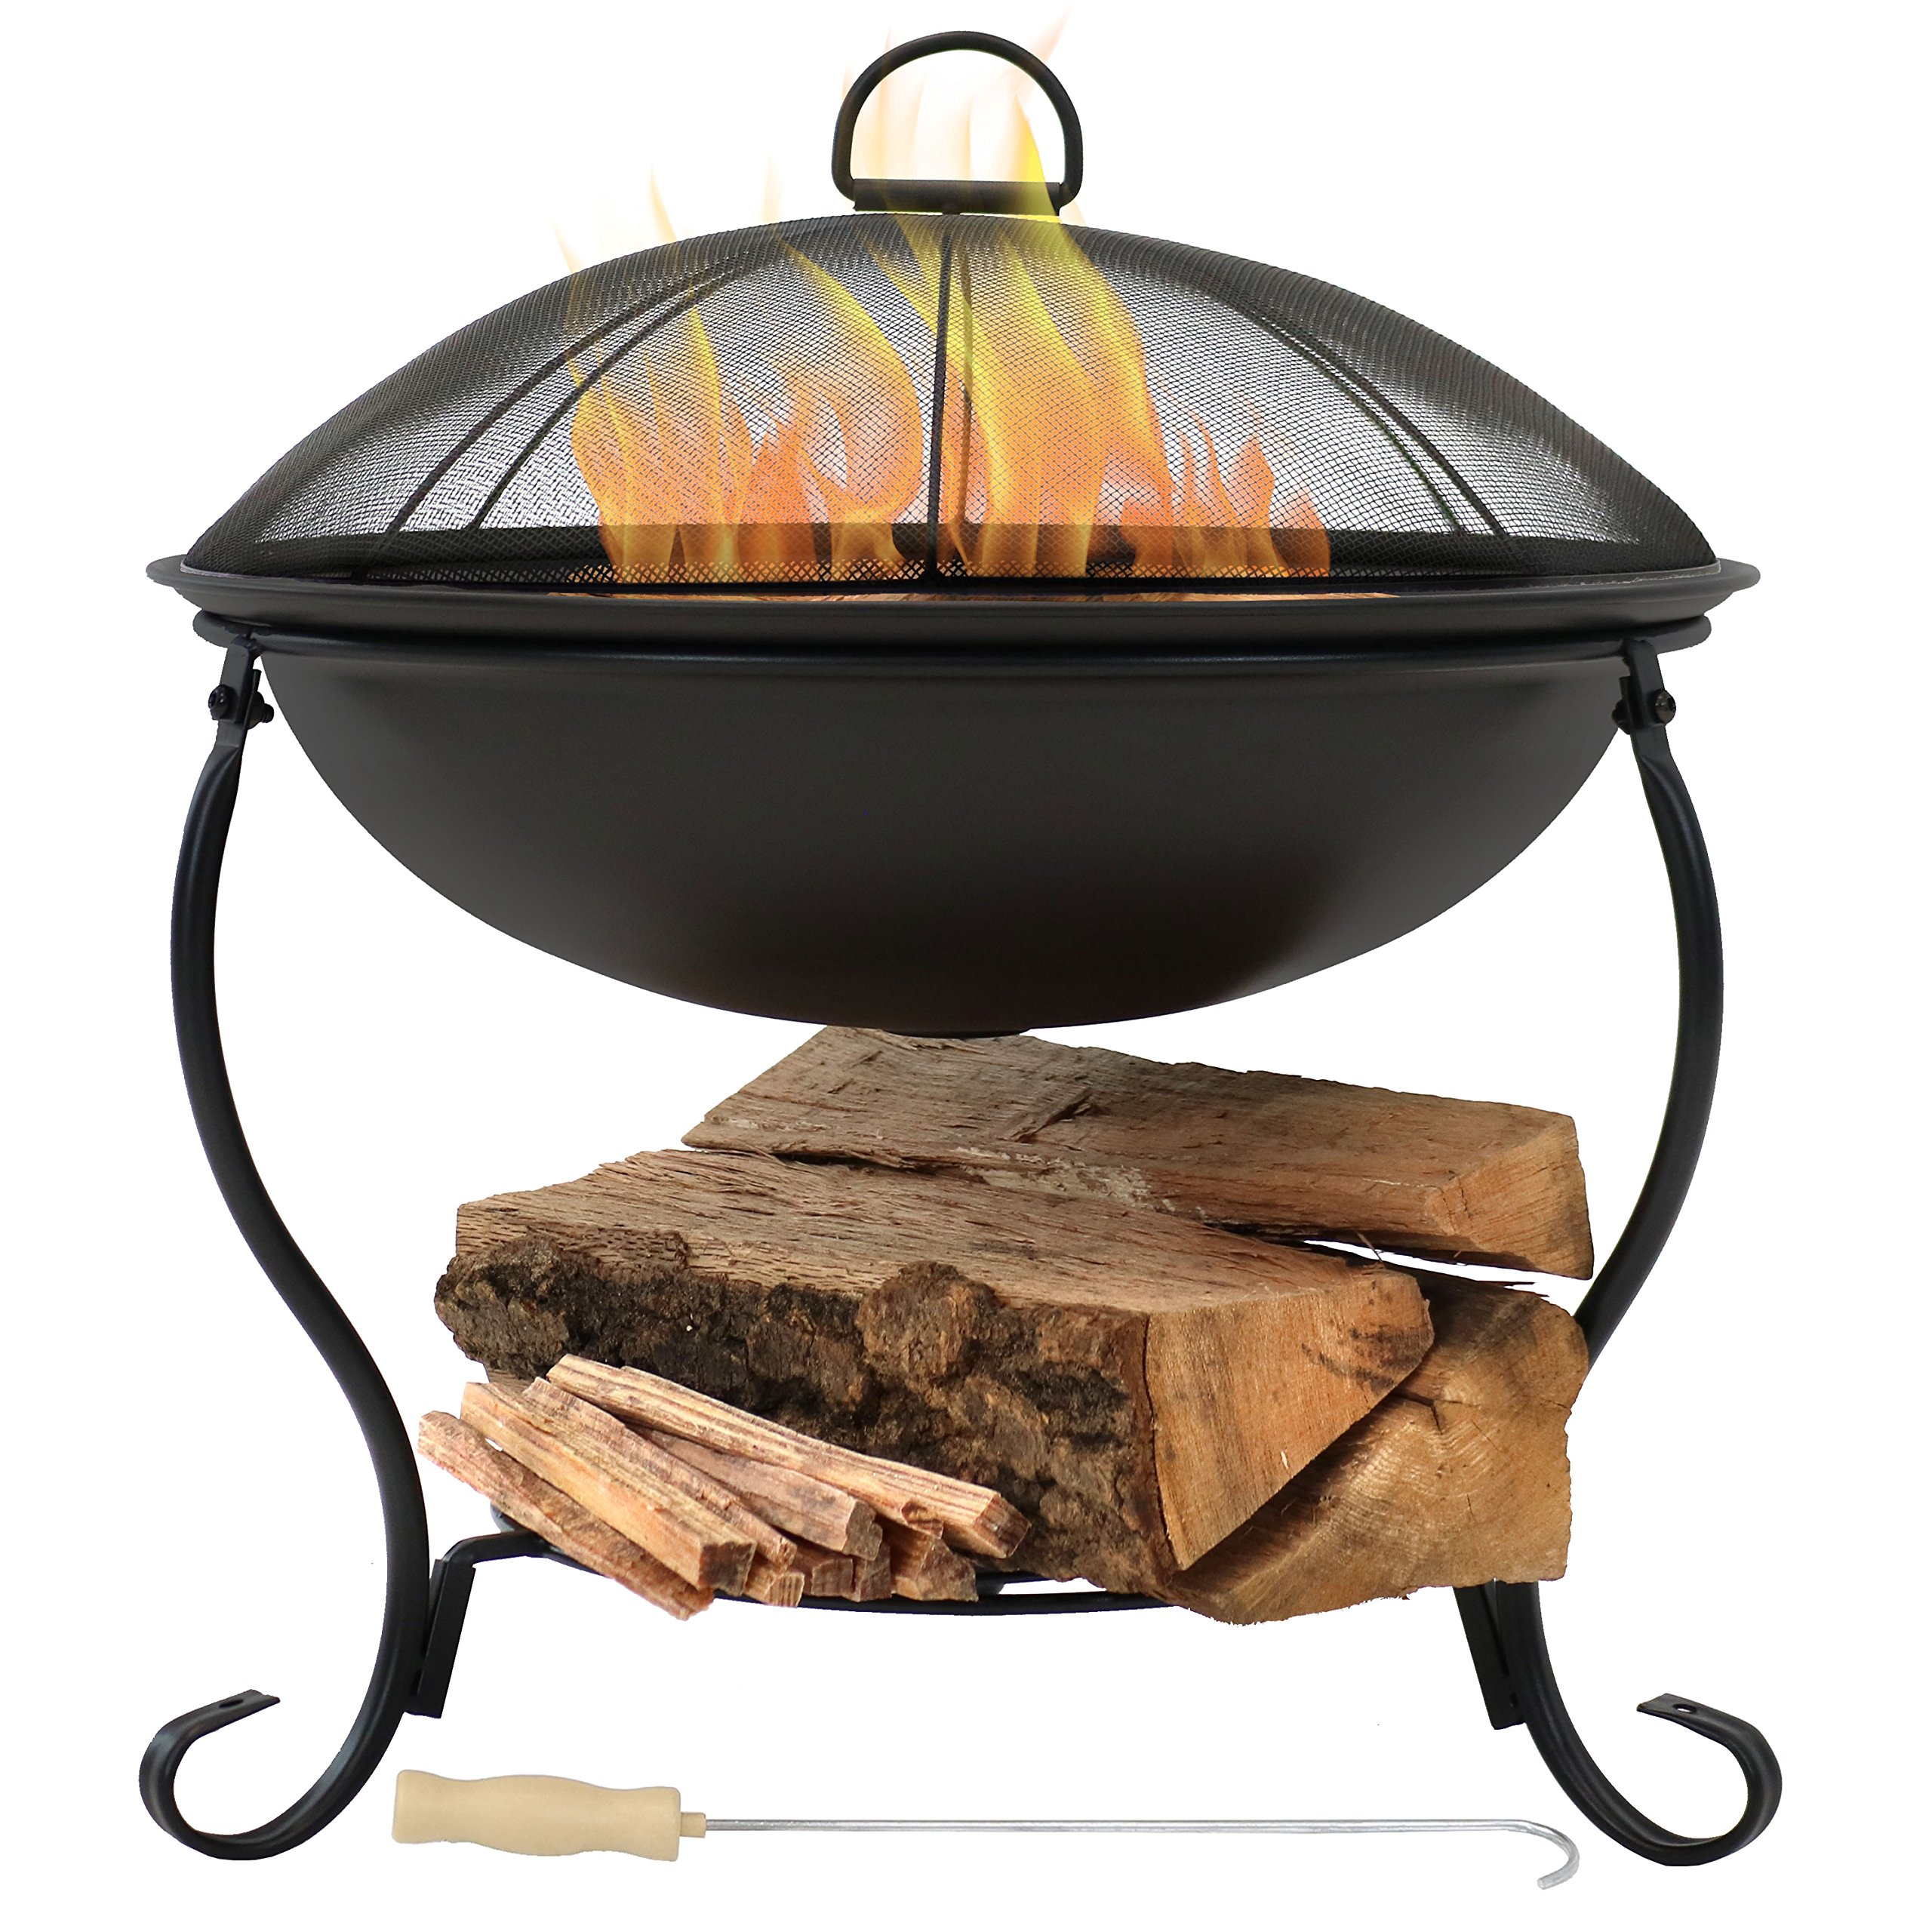 Sunnydaze Elegant Fire Pit Bowl, Outdoor Wood Burning Patio Fireplace with Spark Screen and Built-in Log Holder, 18-Inch